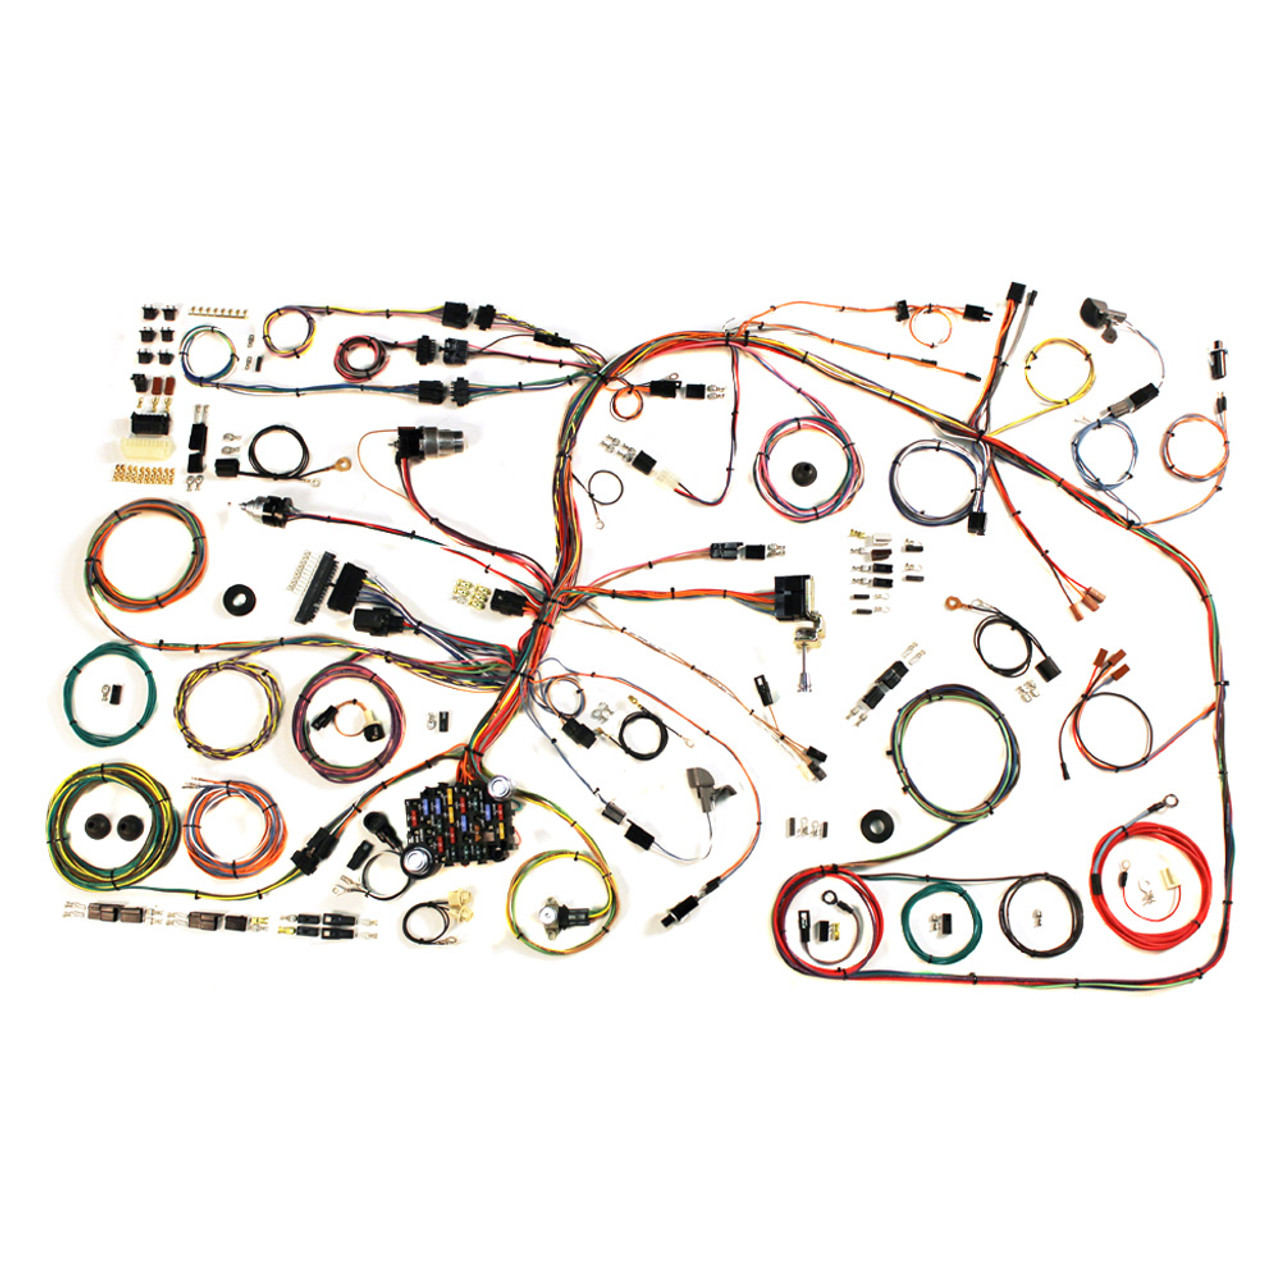 american autowire 1967 1972 ford truck classic update complete wiring kit ame [ 1280 x 1280 Pixel ]